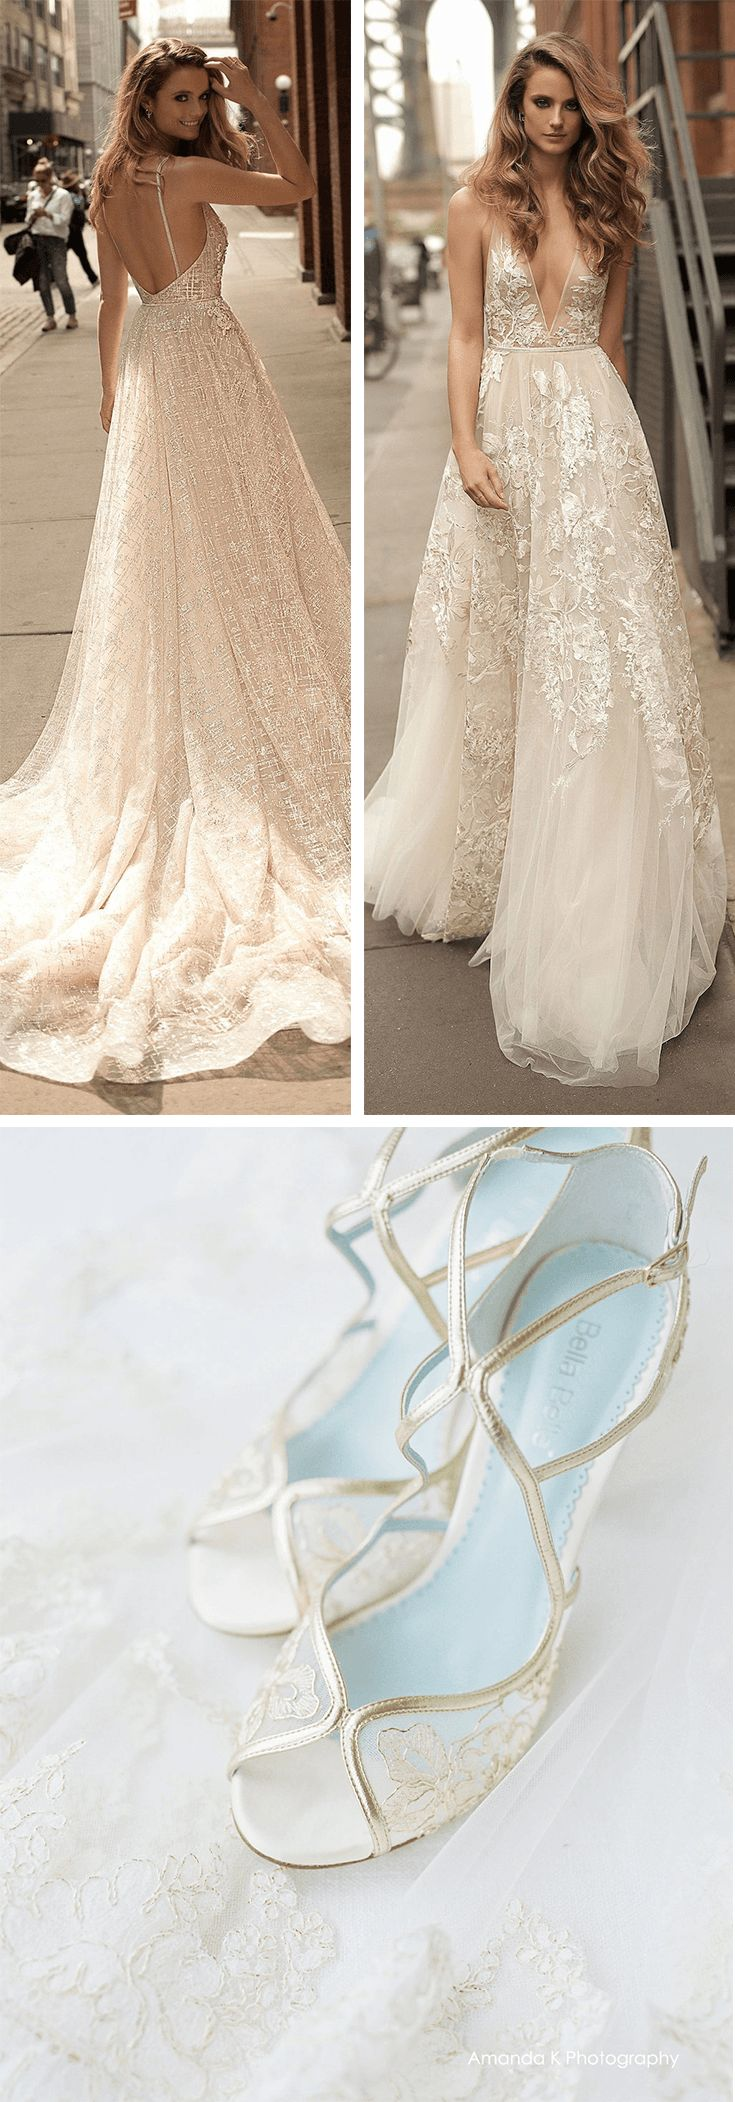 Berta Spring 2018 wedding dress and Bella Belle comfortable gold wedding shoe, Tess make the perfect glamorous wedding outfit fit for a destination wedding! The romantic, lace floral print, V neck, bare back and flowly tulle gown matches with the gold lace embroidery on the wedding heels. Comfortable with extra padding and a something blue sole, this wedding shoe is made for brides who are a dreamer. Photography by Amanda K #weddingshoes